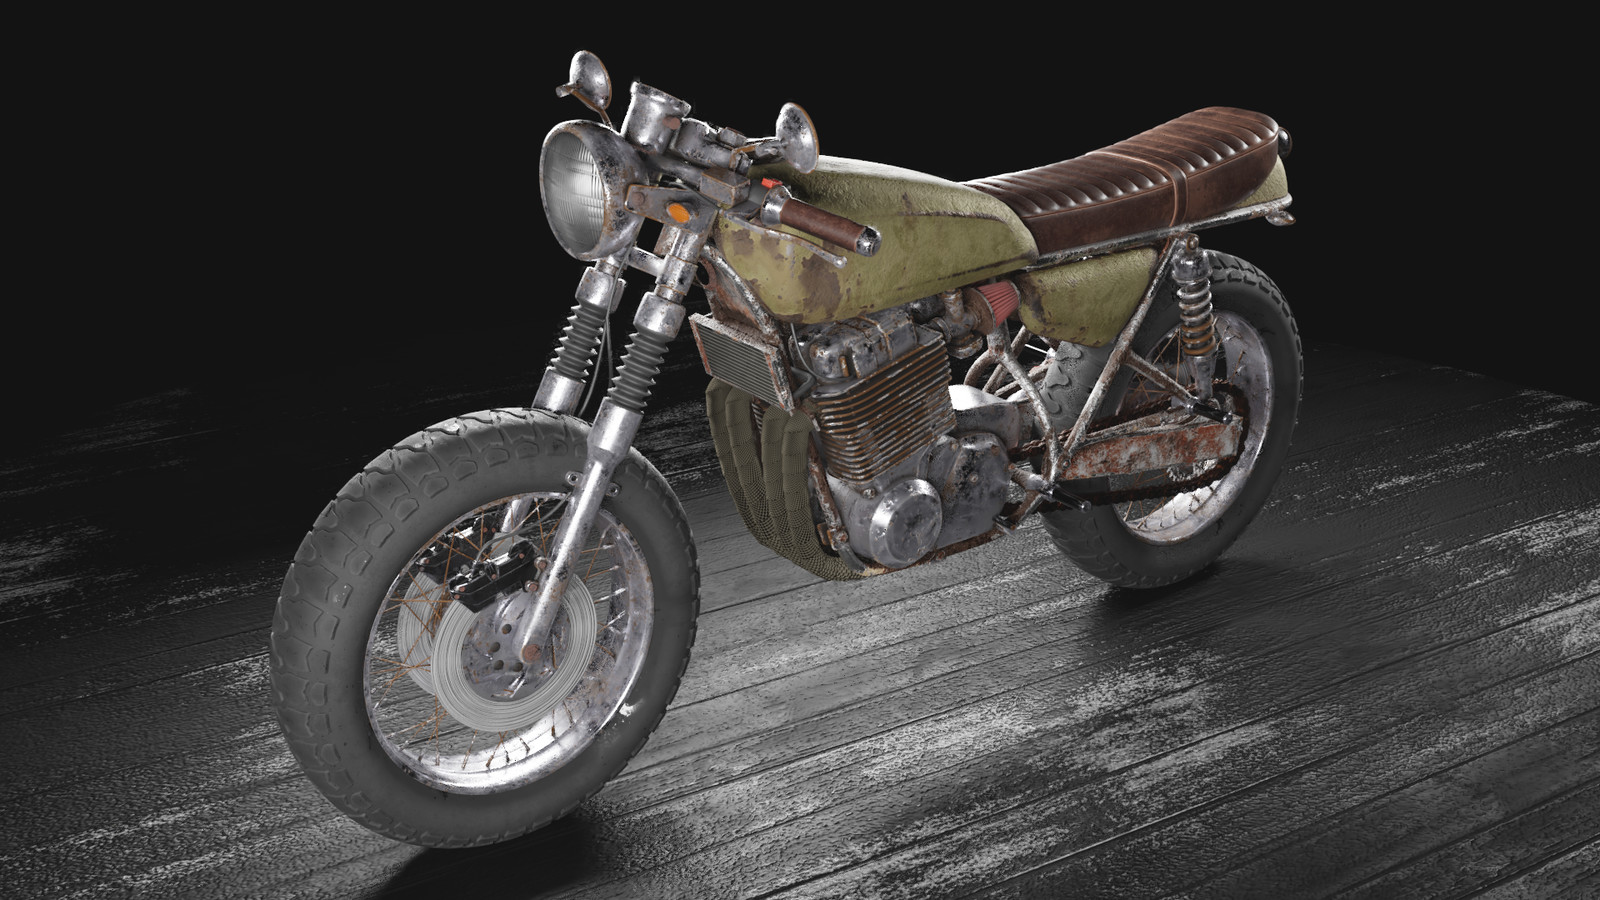 Post-apocalyptic cafe racer motorcycle